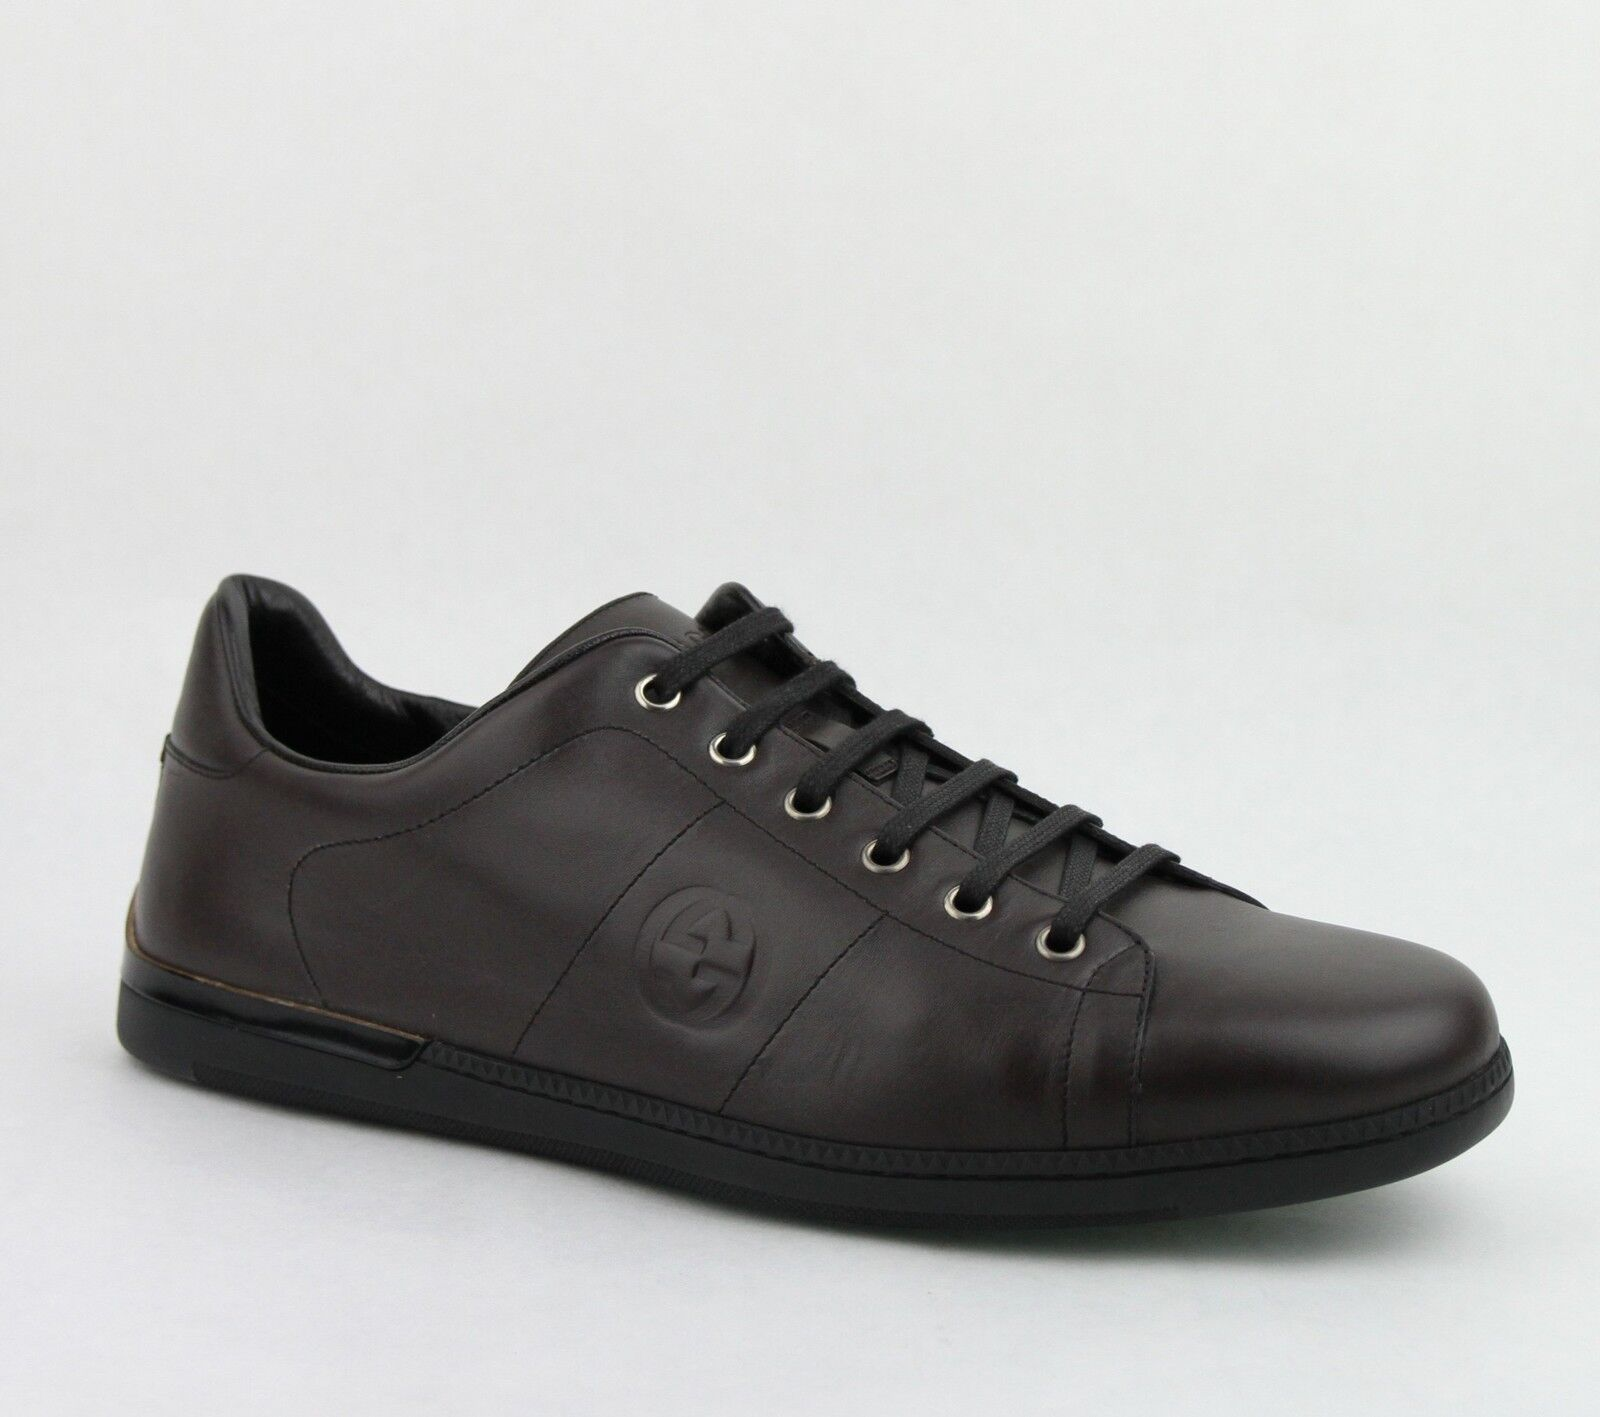 $620 New Gucci Men's Leather Lace-up Cocoa Sneakers Shoes Brown 329843 2140